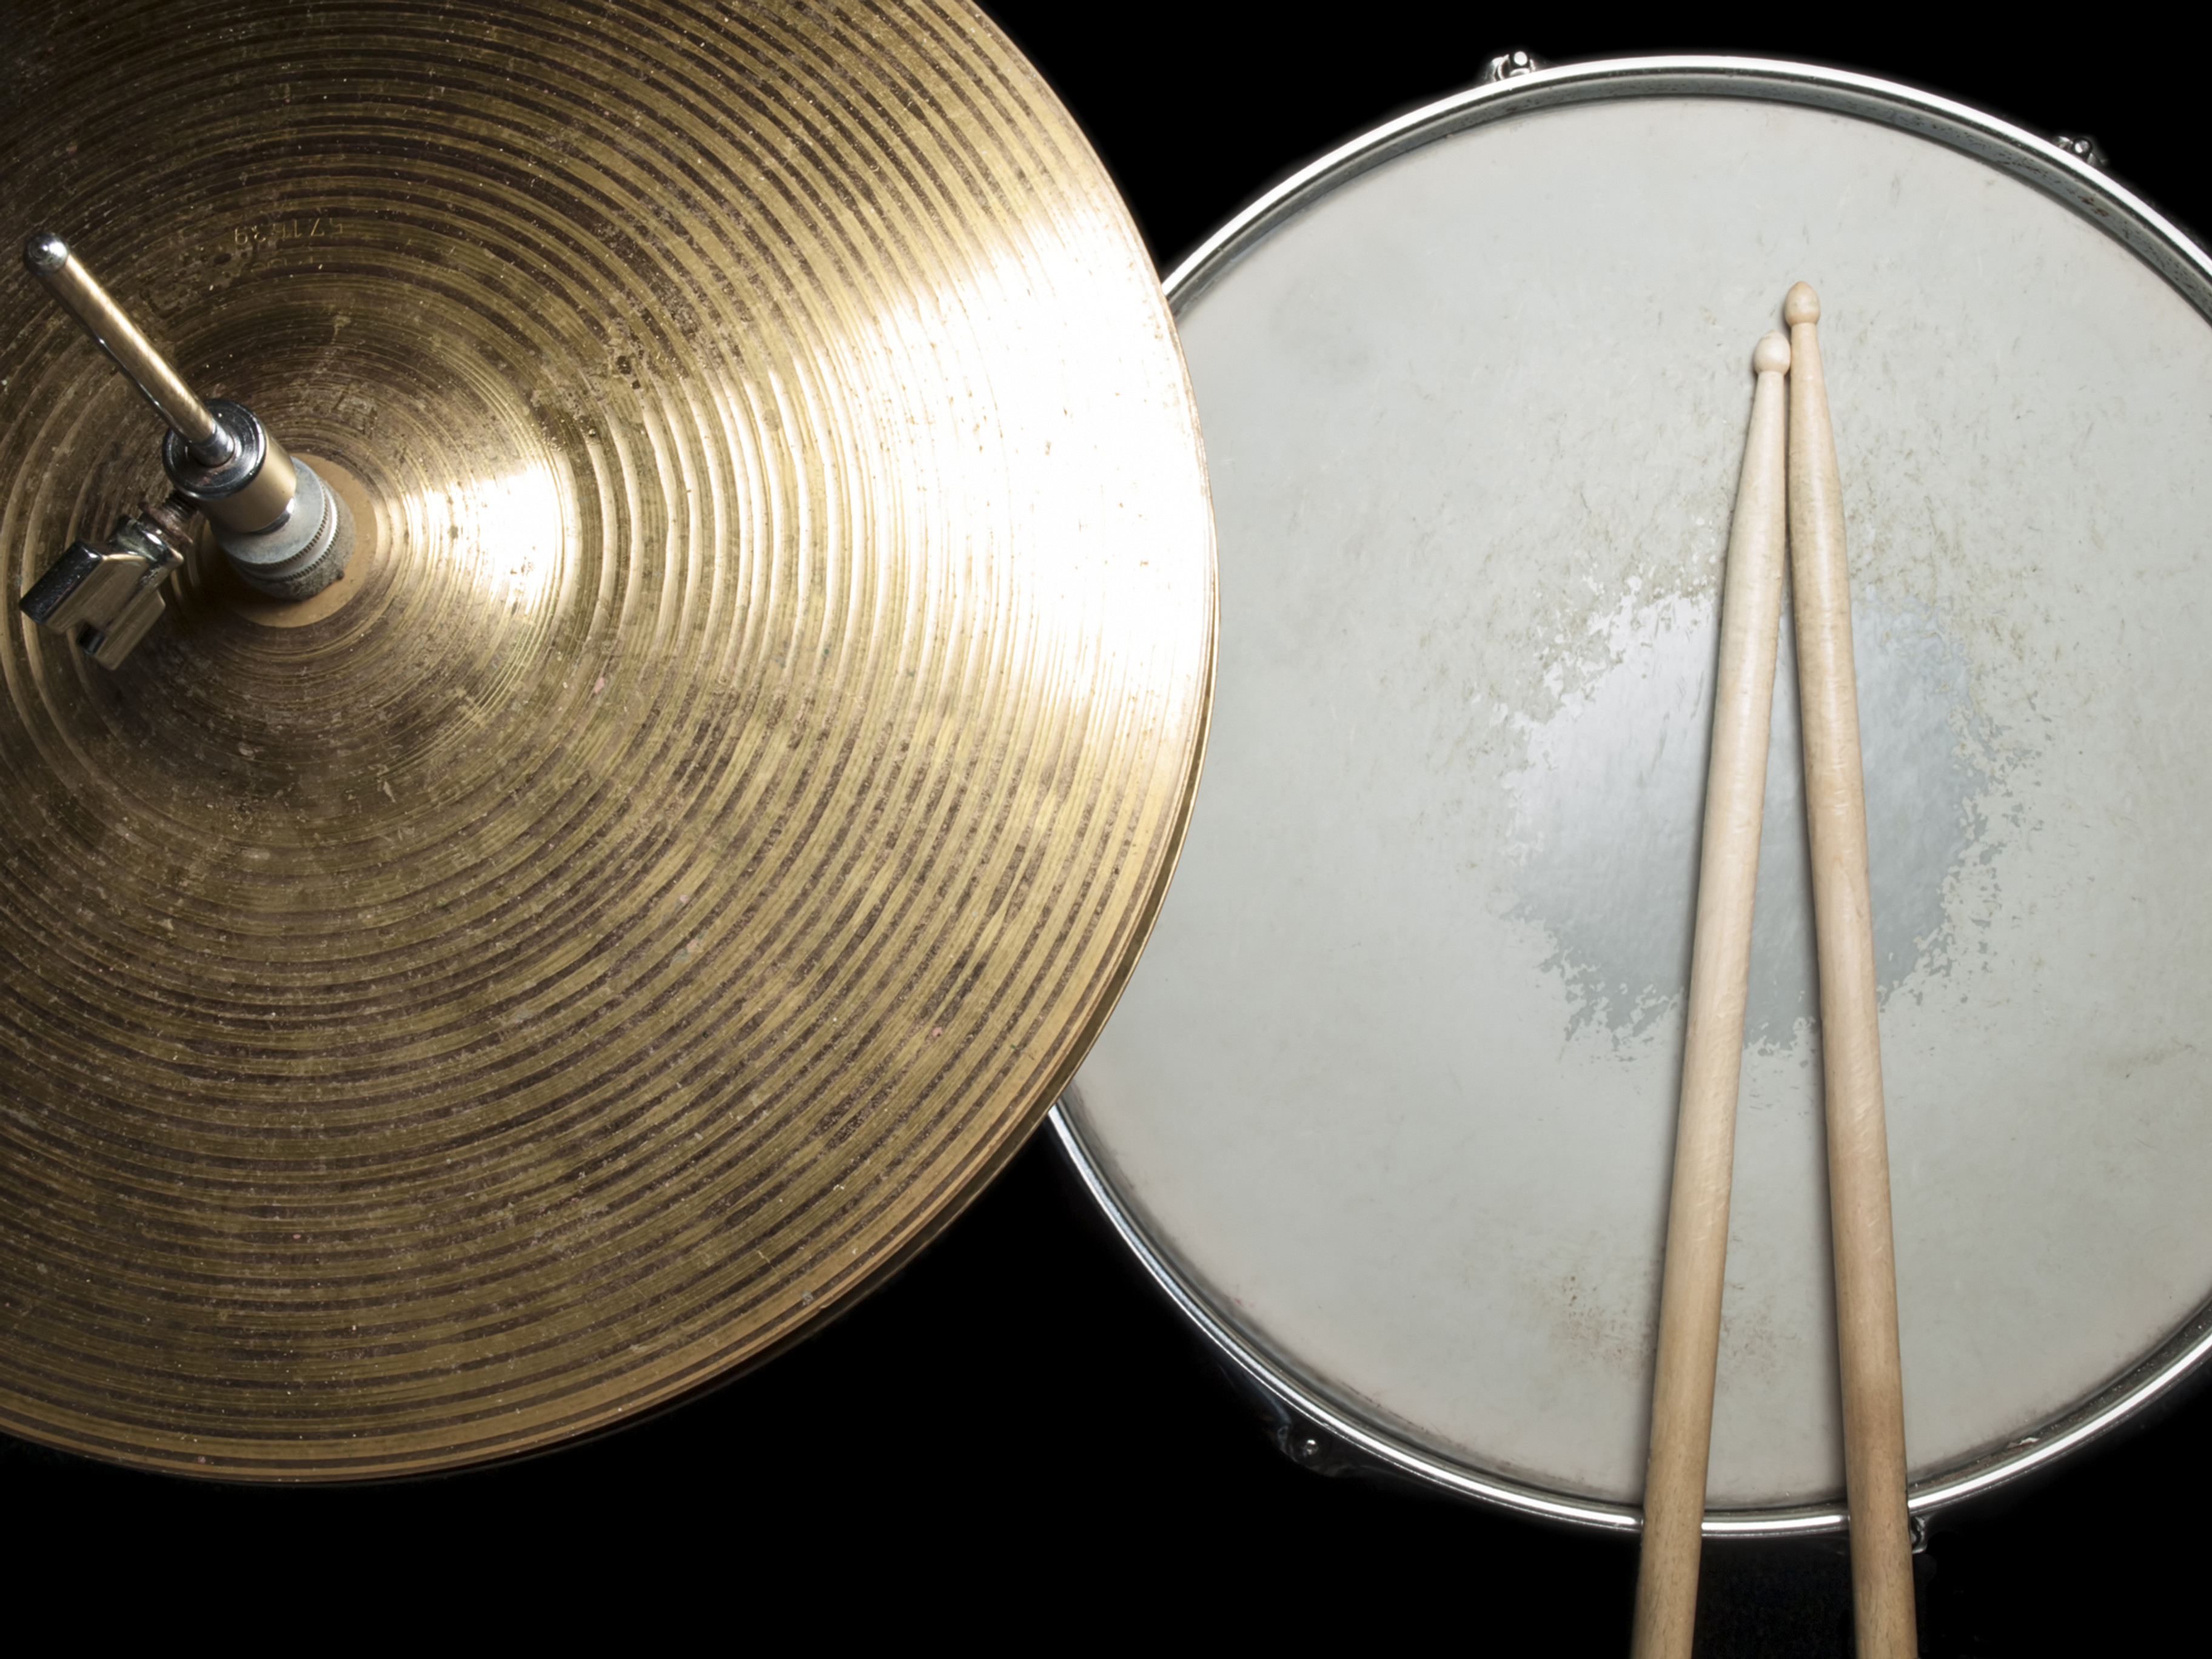 30 Minute Drumset Lesson